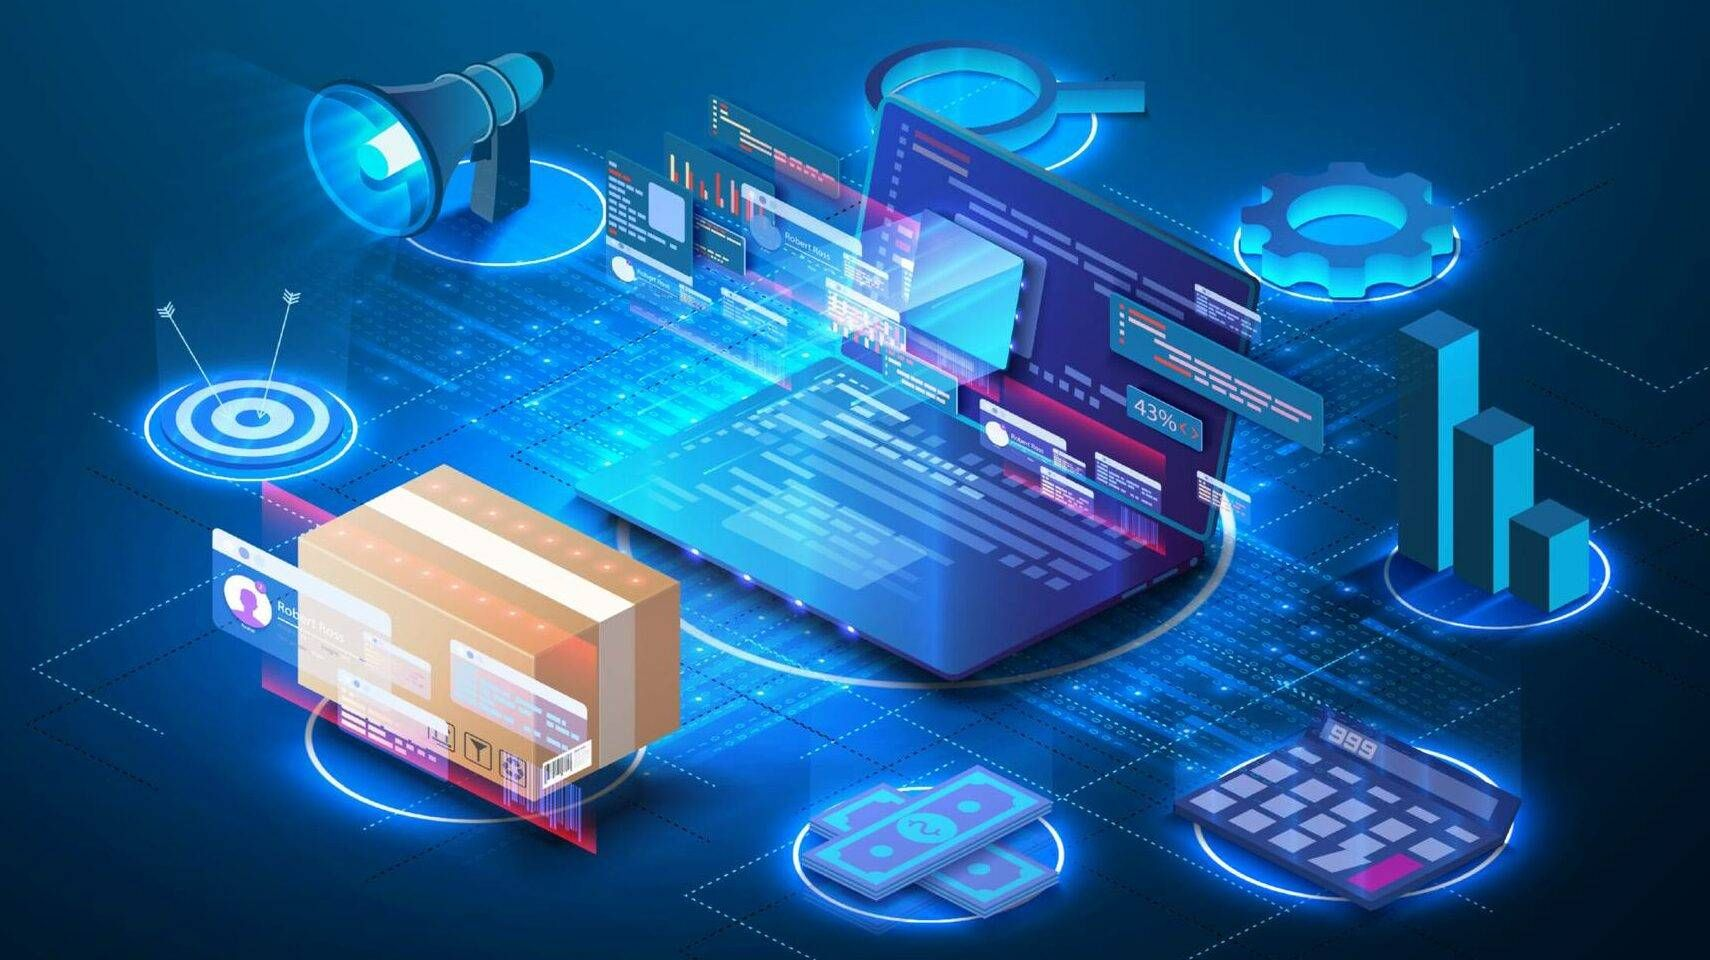 Illustration of digital warehouse and inventory management supply chain technology, Rewire, tech